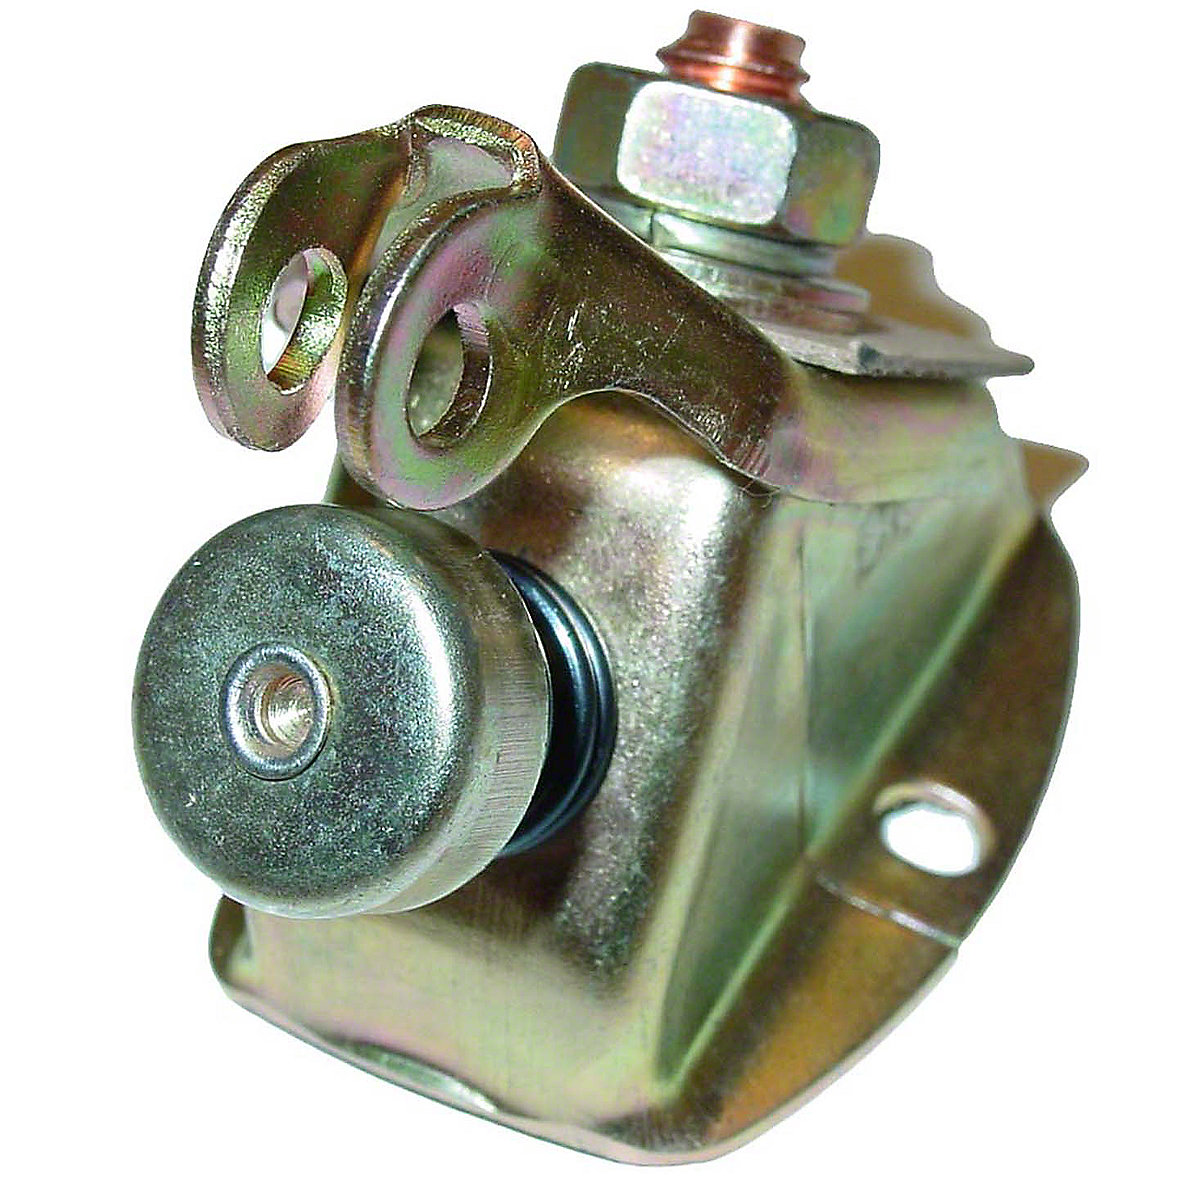 Starter Switch For Allis Chalmers: B, C, CA, G, IB, RC, WC, WD, WD45 Gas, WF.